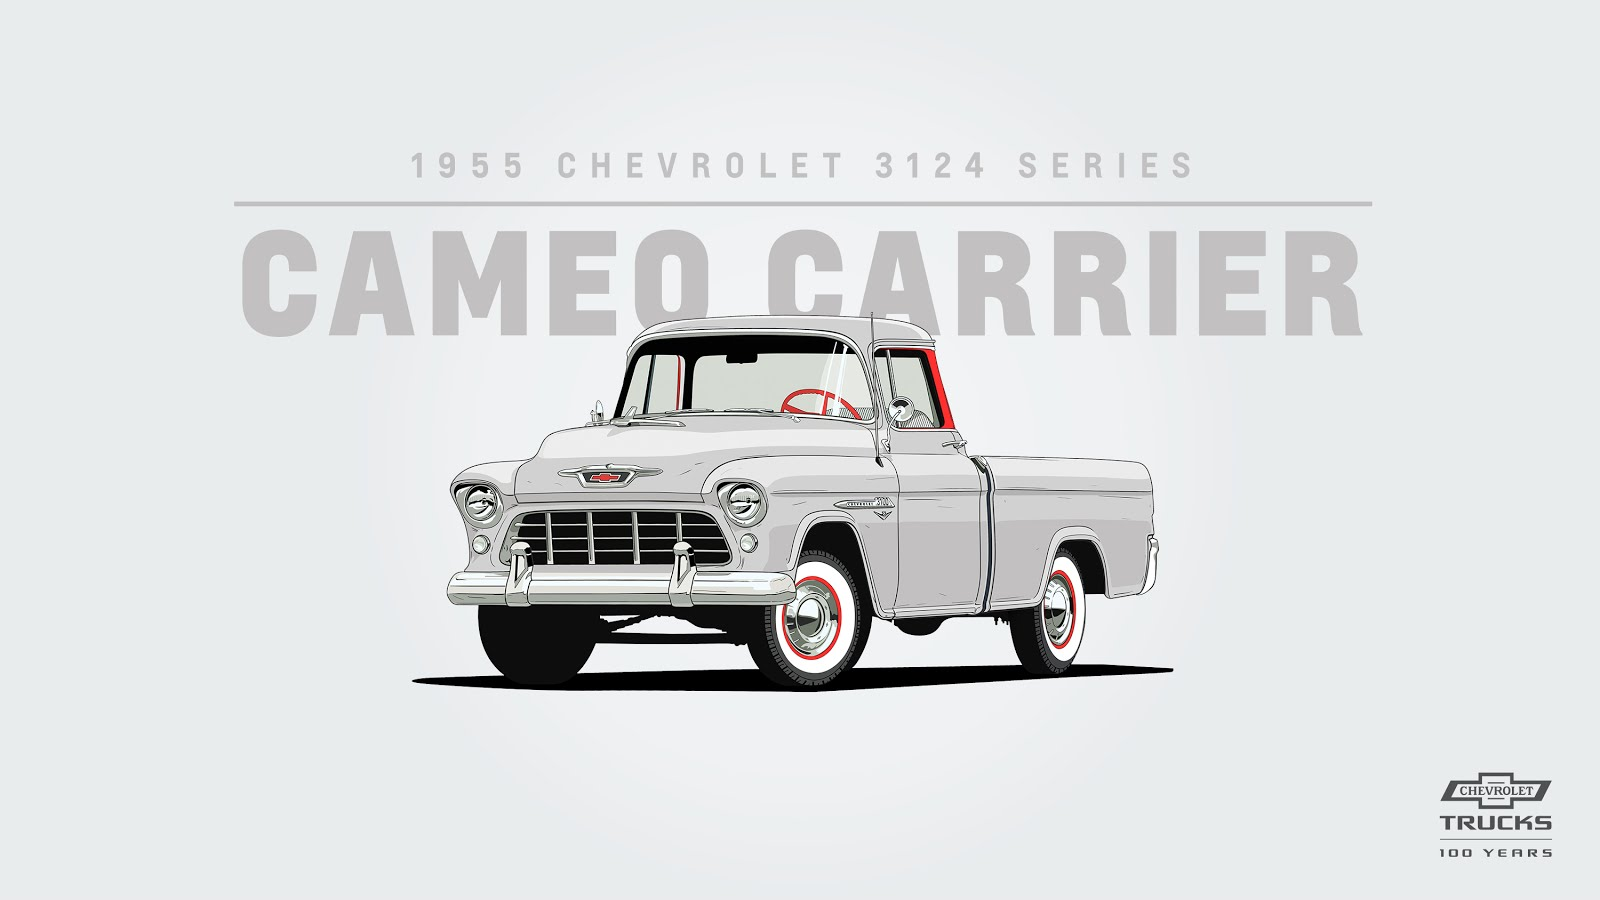 medium resolution of producing 123 horsepower with its 3 85l i 6 engine the 1955 chevrolet 3124 series was the first fleetside flat sided truck in the industry